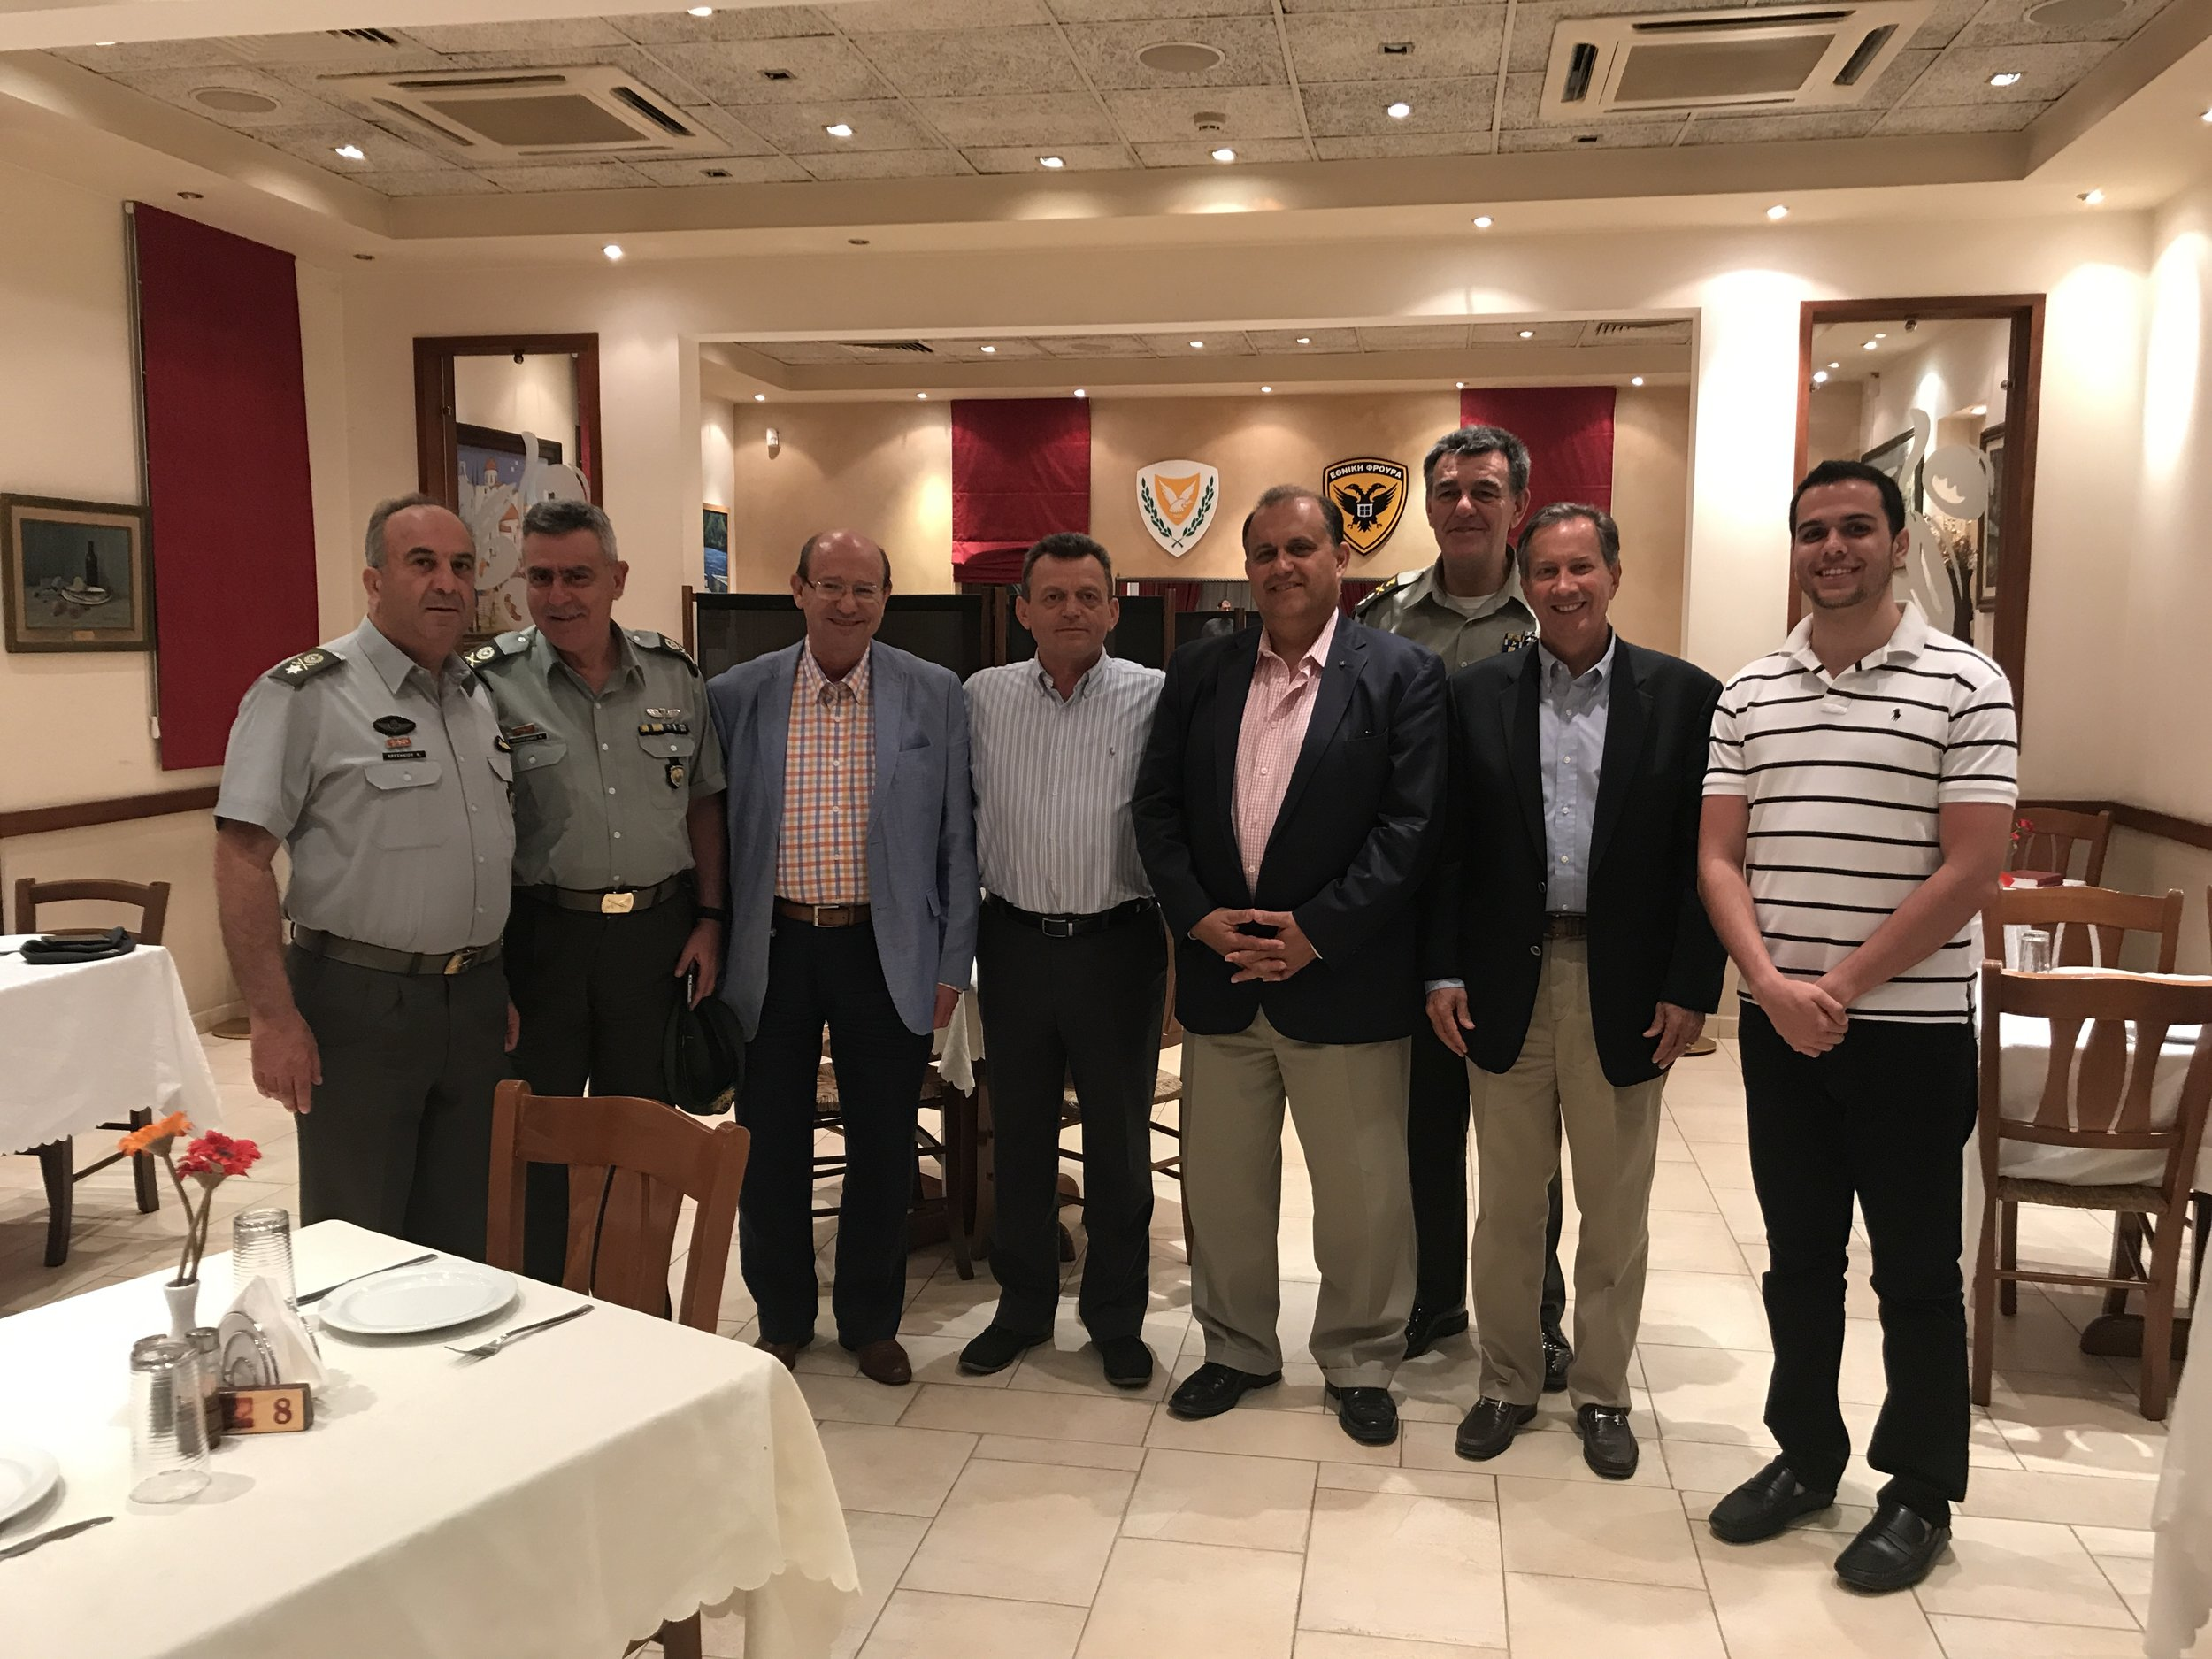 Dinner hosted by Lt. General Ilias Leontaris, Chief of the National Guard of Cyprus (center) at the Officers Club